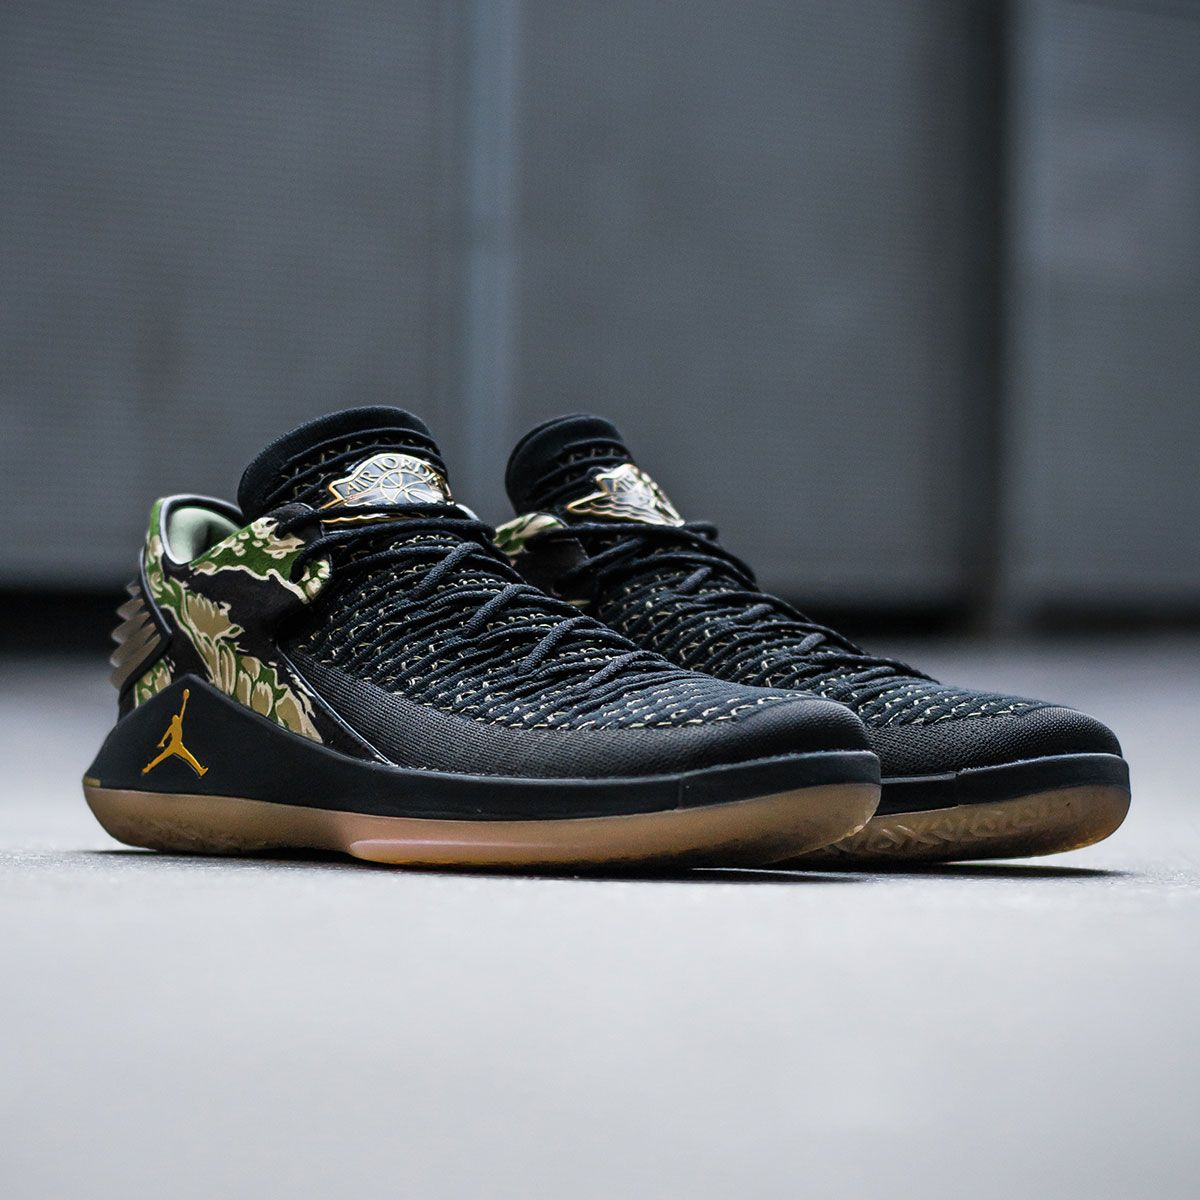 503ad84785c4fe These black Air Jordan XXXII Low with tiger camo around the heel and golden  accents are available now on KICKZ.com and in selected stores!